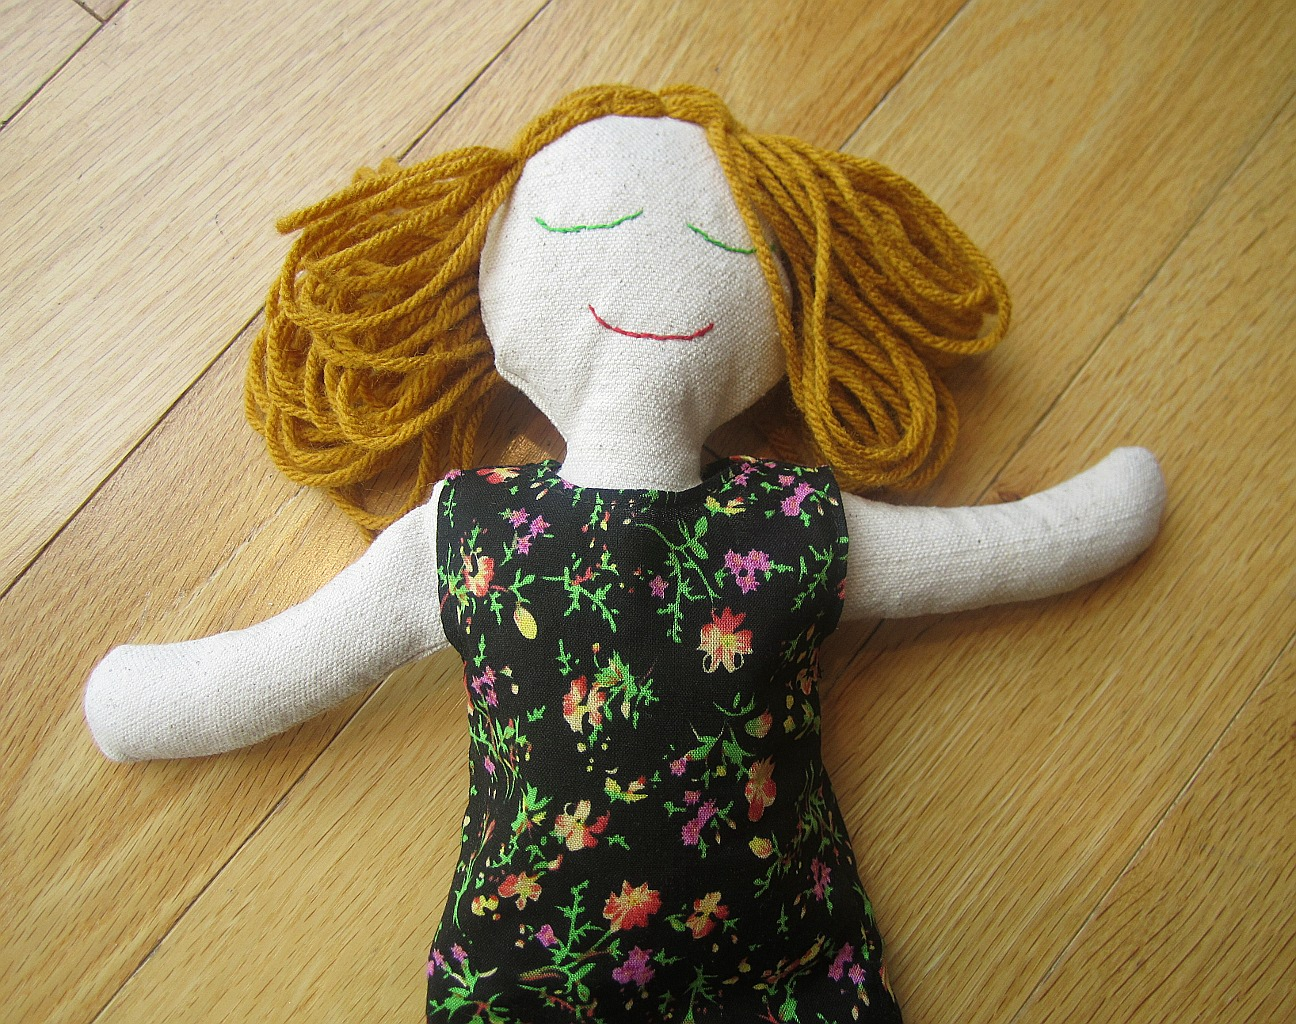 Rag Doll Free Sewing Pattern and Instructions | Amie Scott